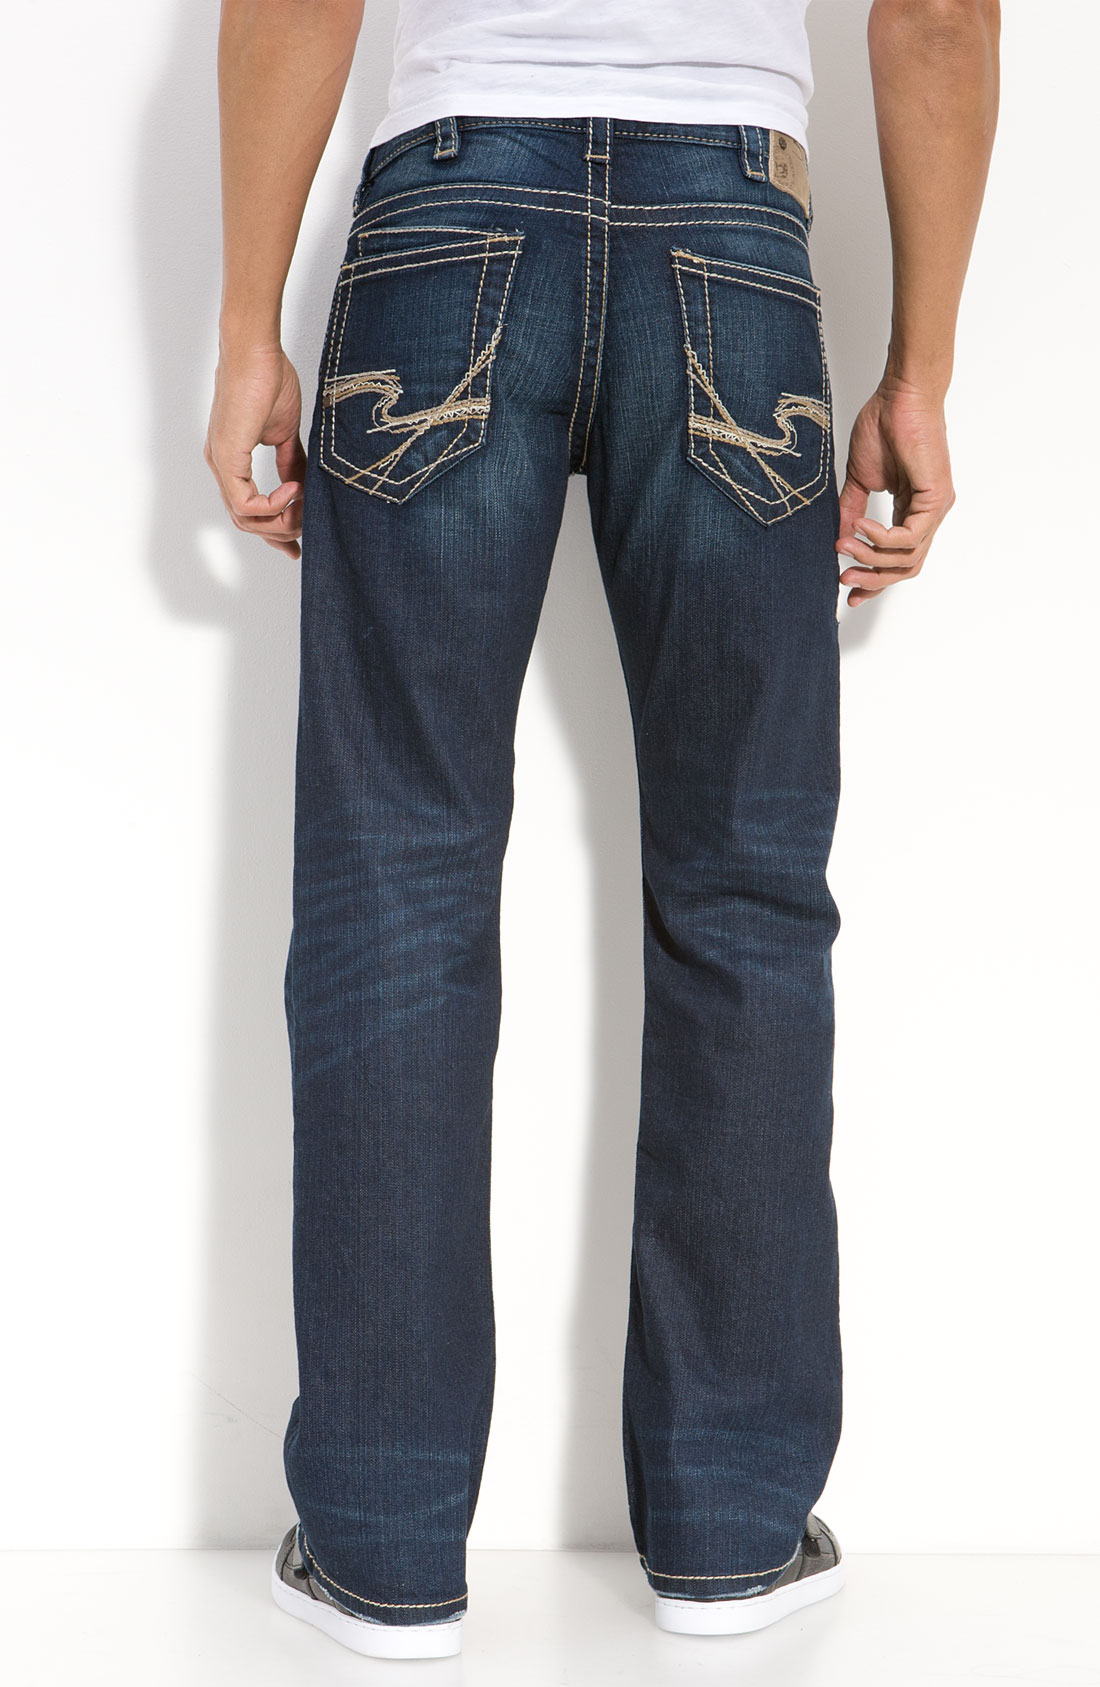 silver jeans co  zac relaxed straight leg jeans in blue for men  dark wash